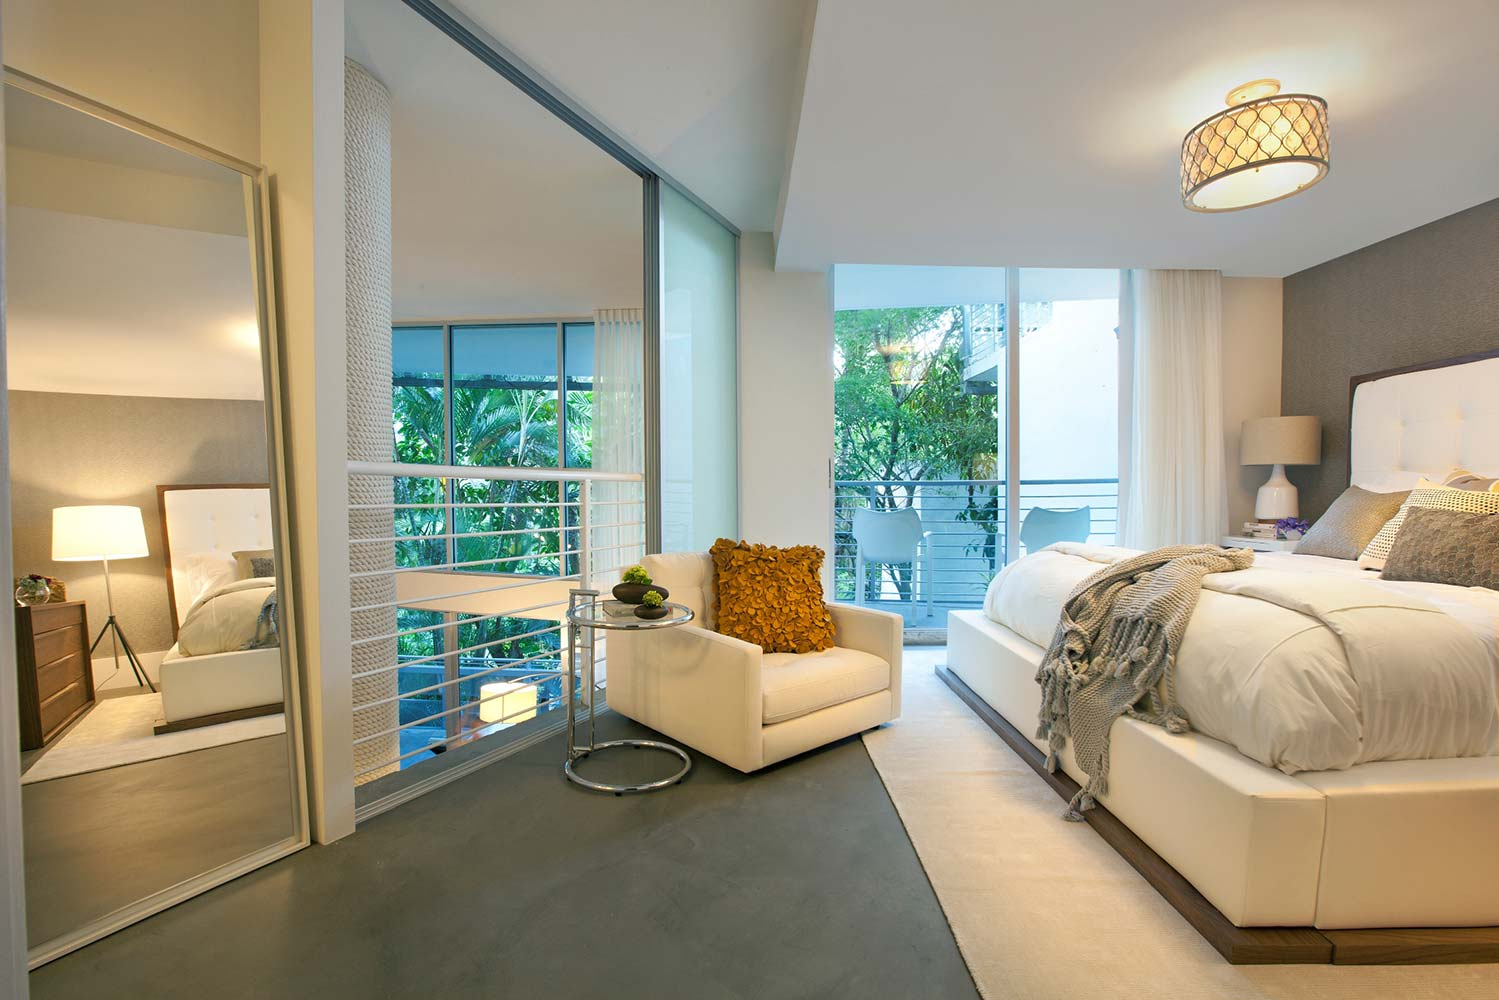 South beach chic interiors by dkor miami interior designers - Interior decorations for bedrooms ...